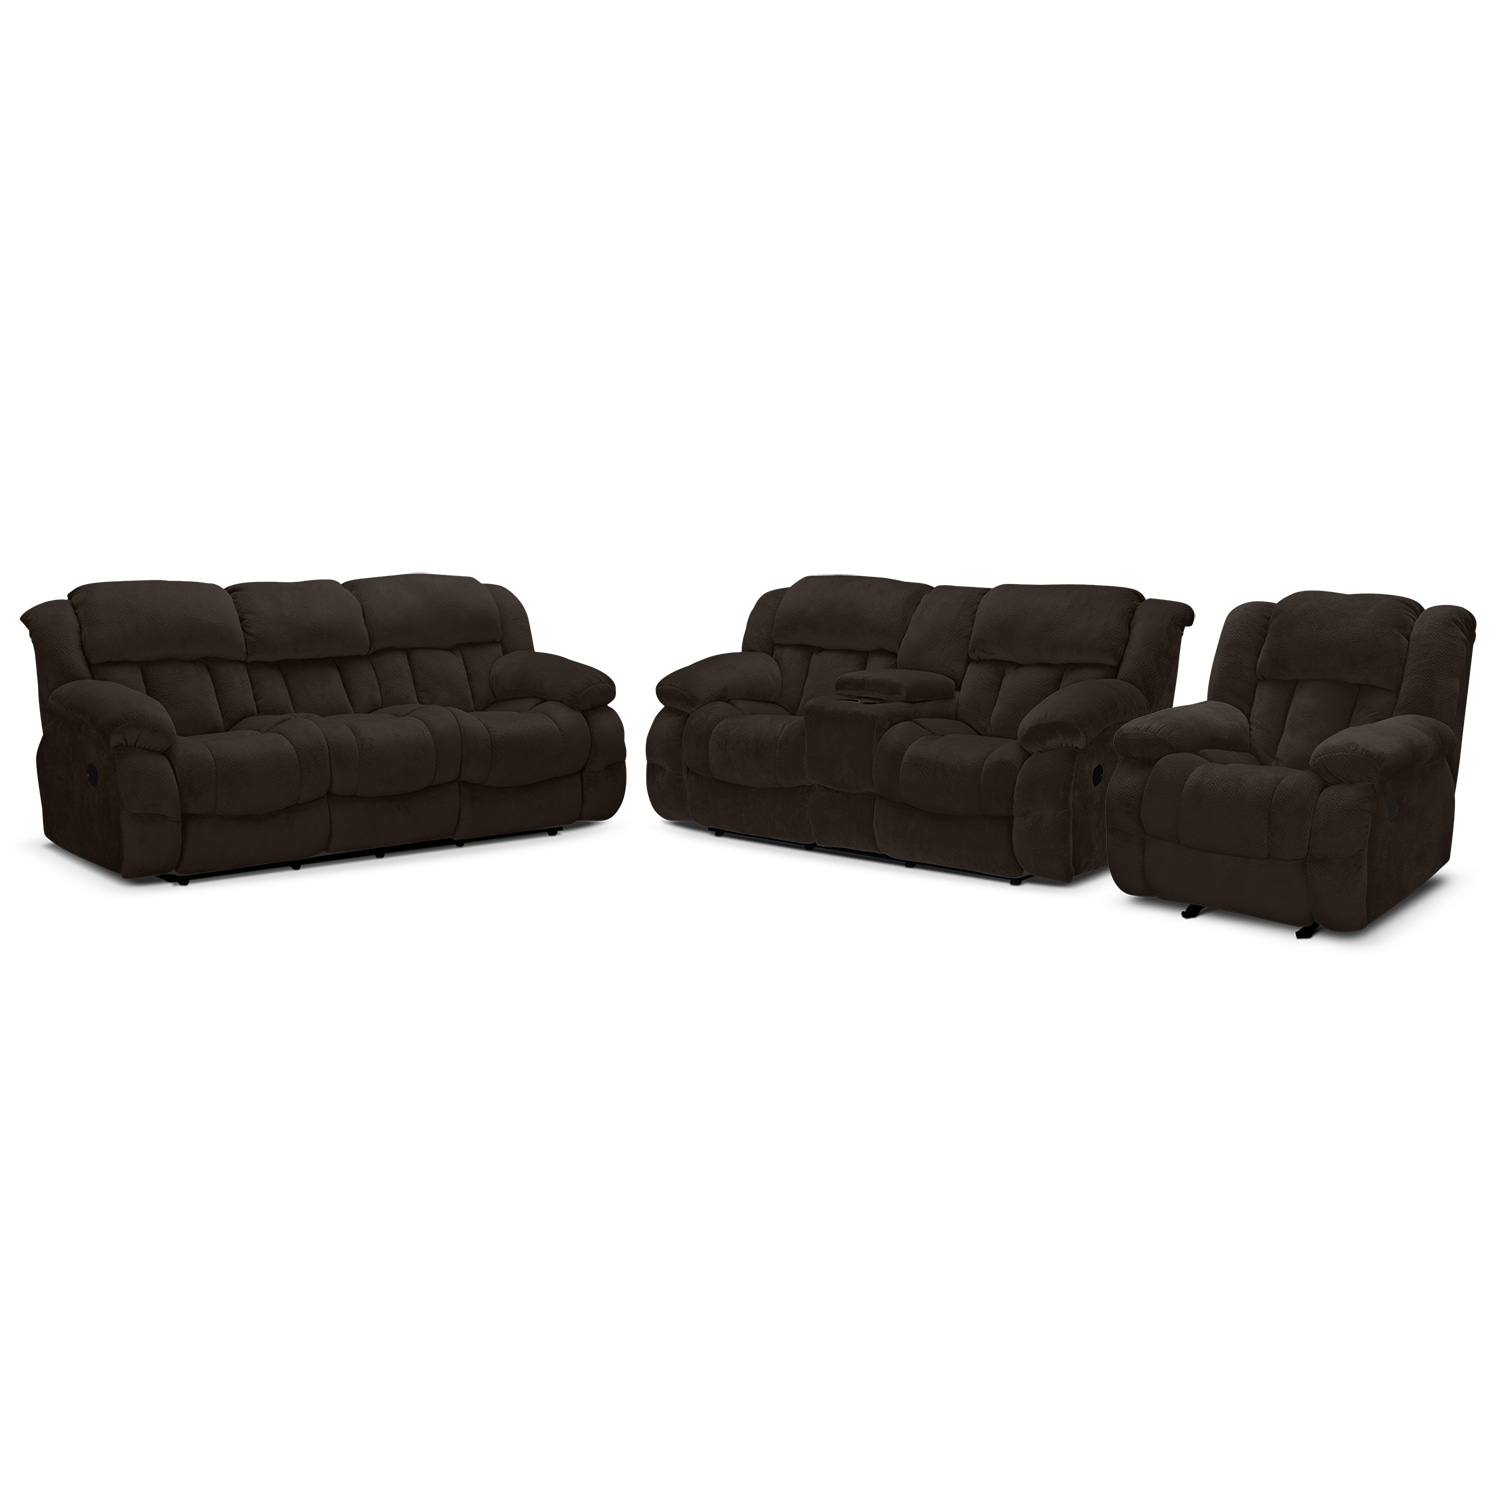 Living Room Furniture - Park City III 3 Pc. Reclining Living Room